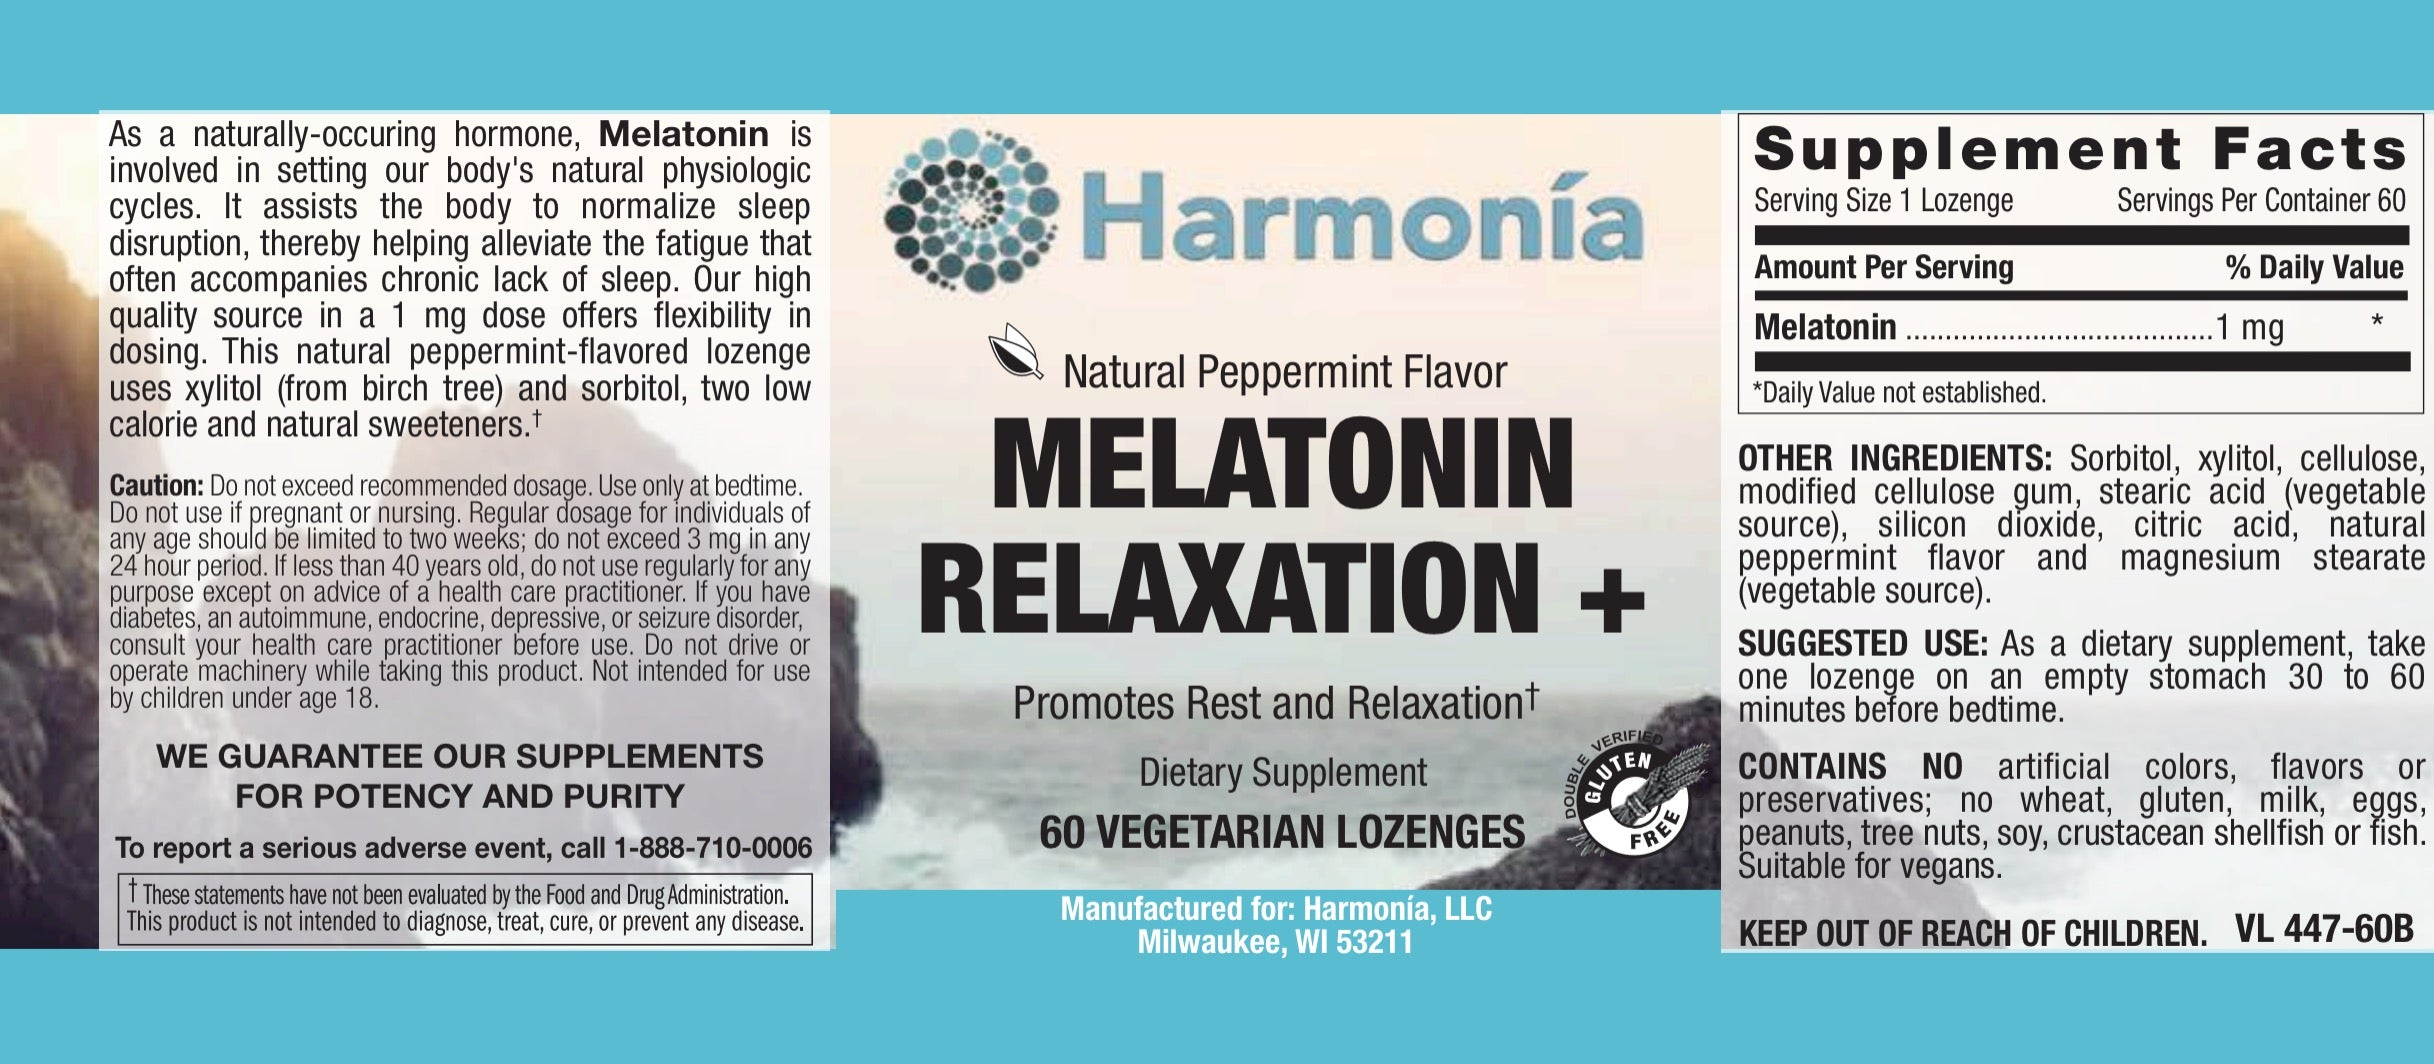 Chewable Melatonin Relaxation + 1 mg for Customized Sleep and Relaxation